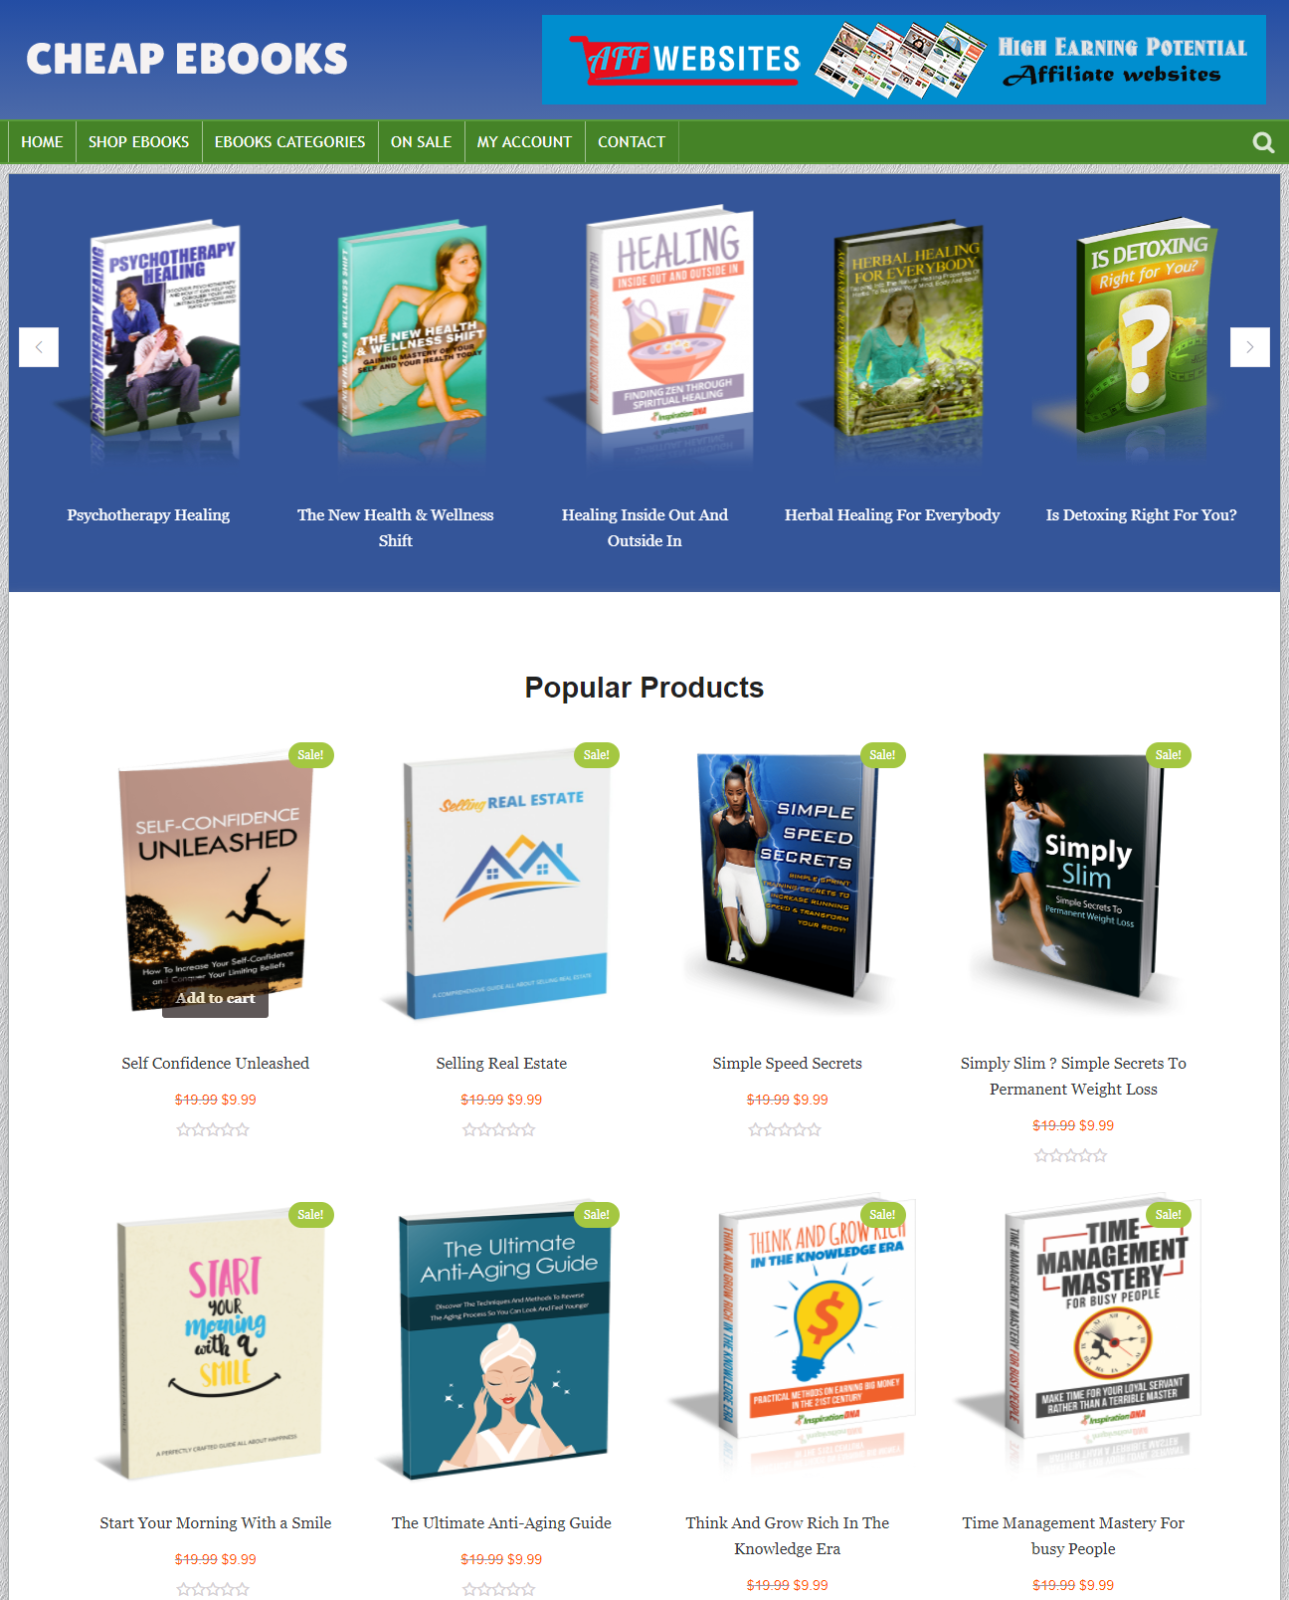 Digital Books Store - Fully Automated Work From Home Website Business For Sale